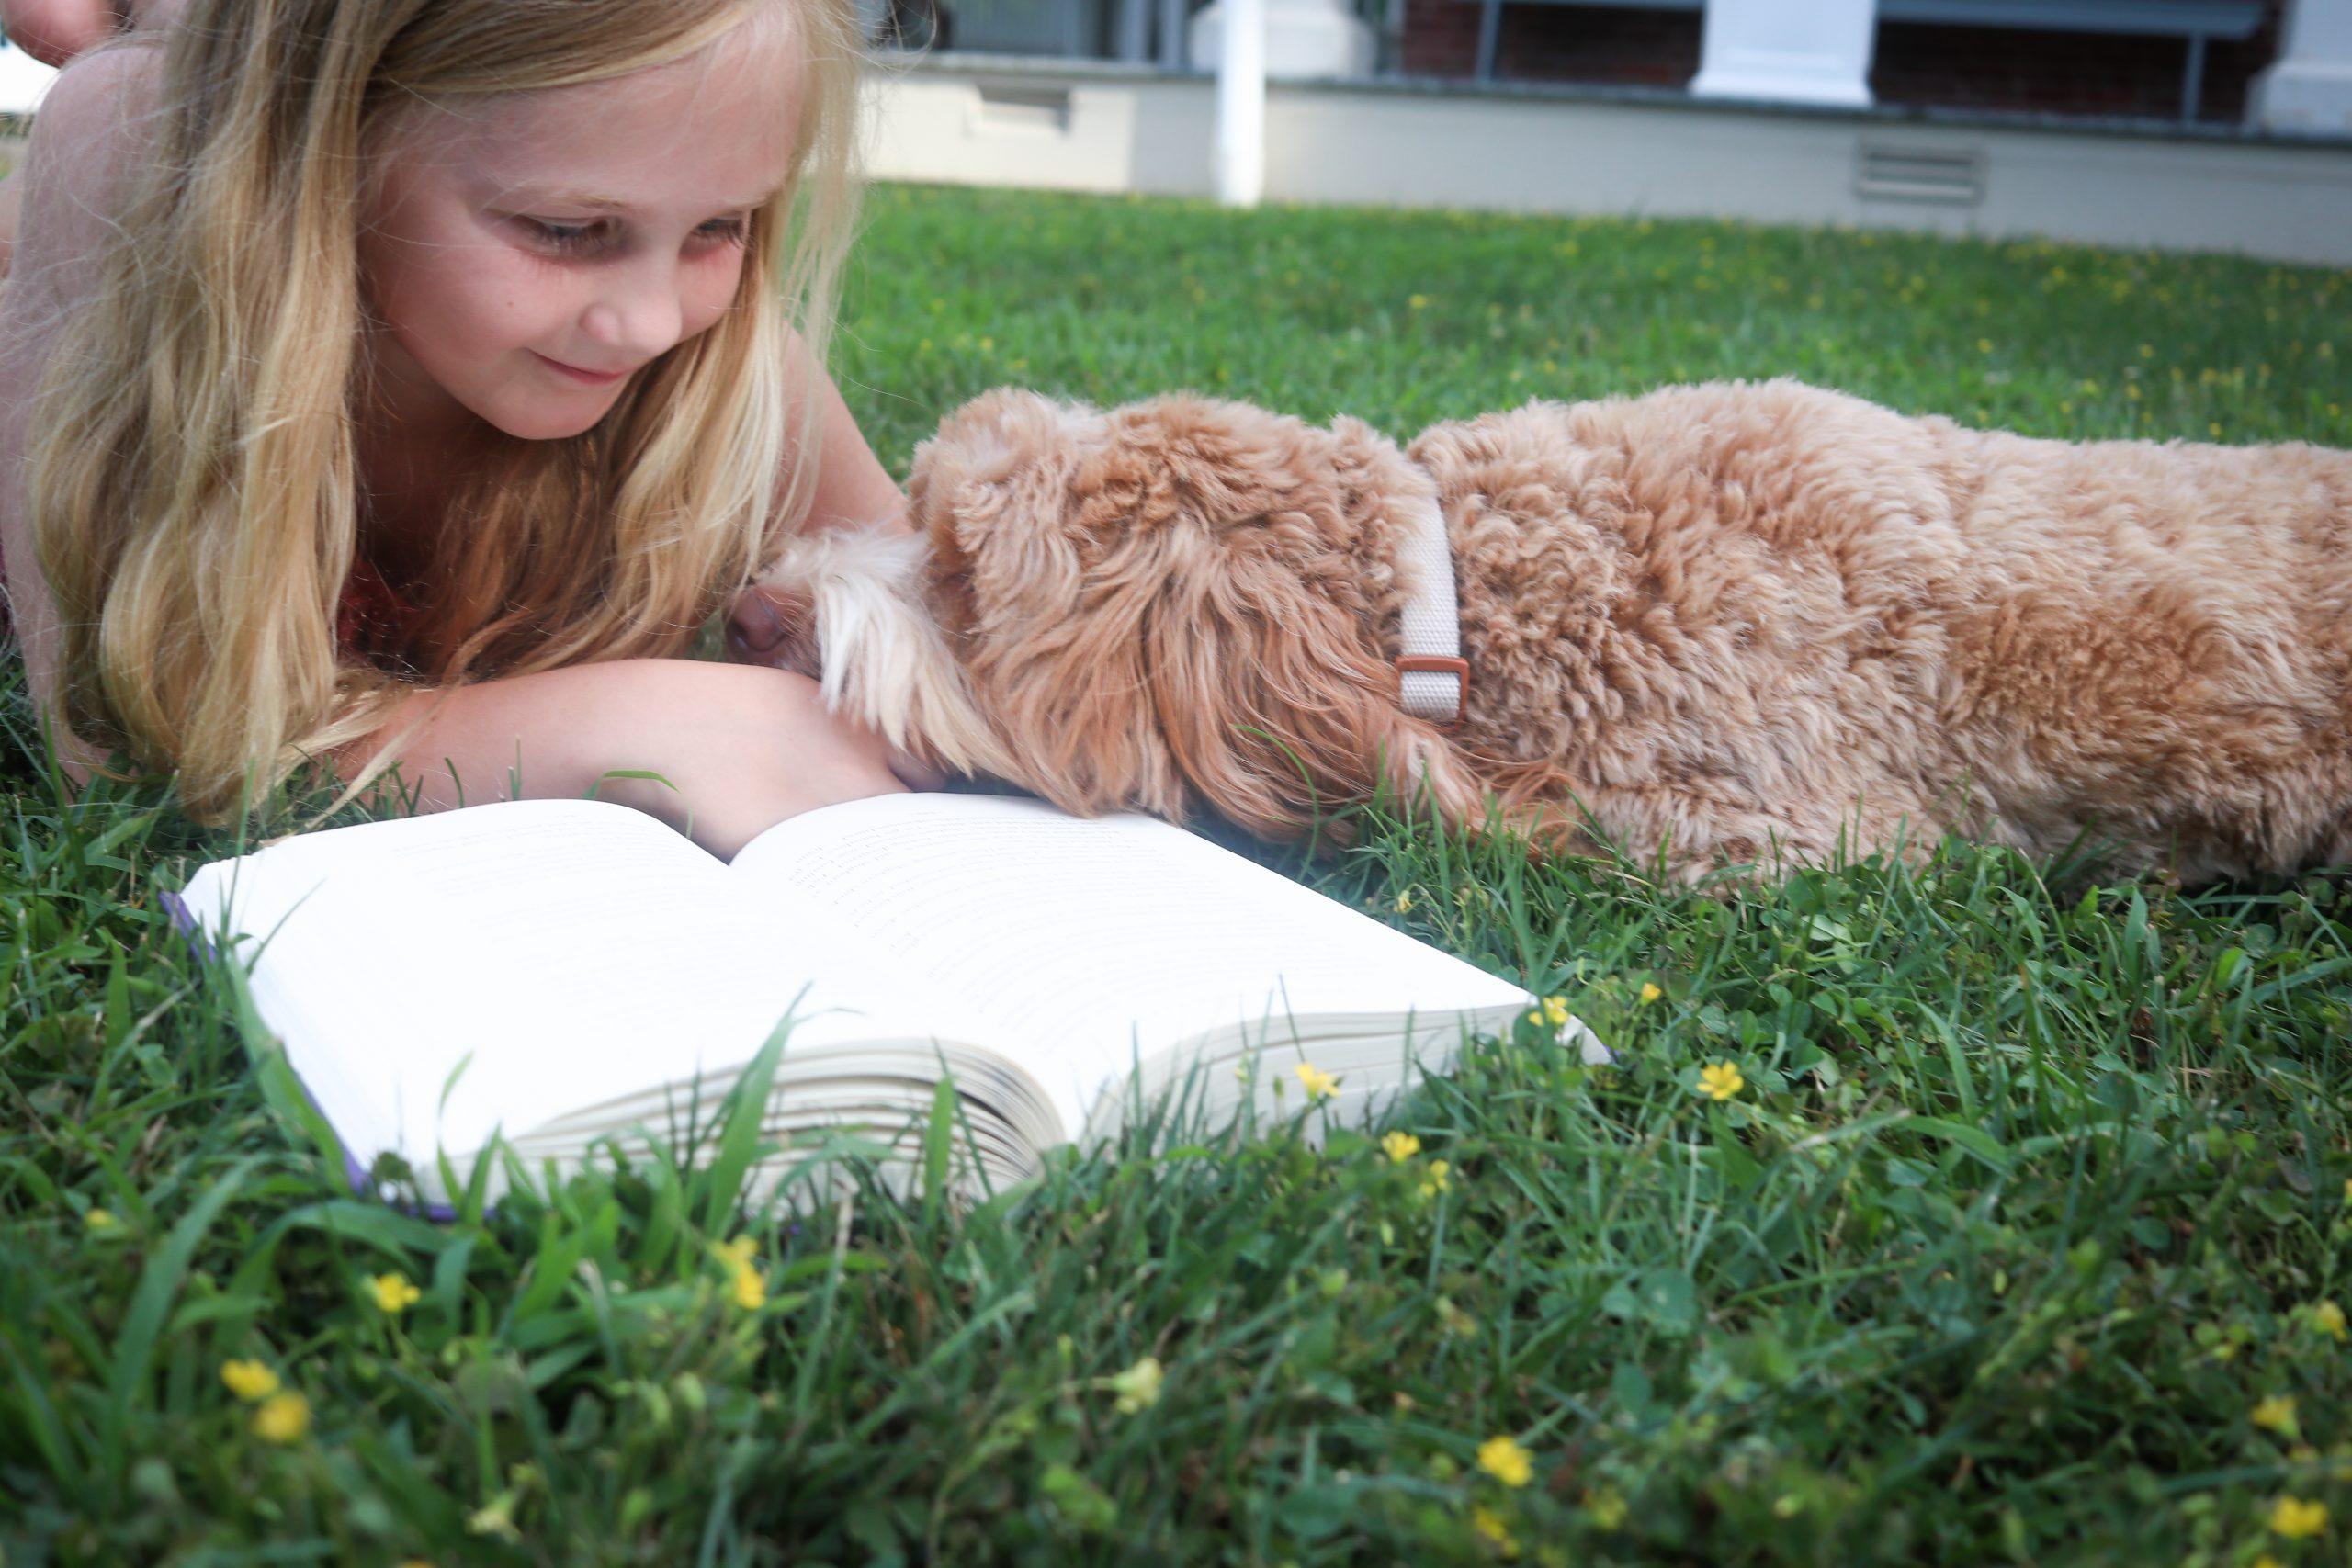 tan Australian labradoodle snuggling with child